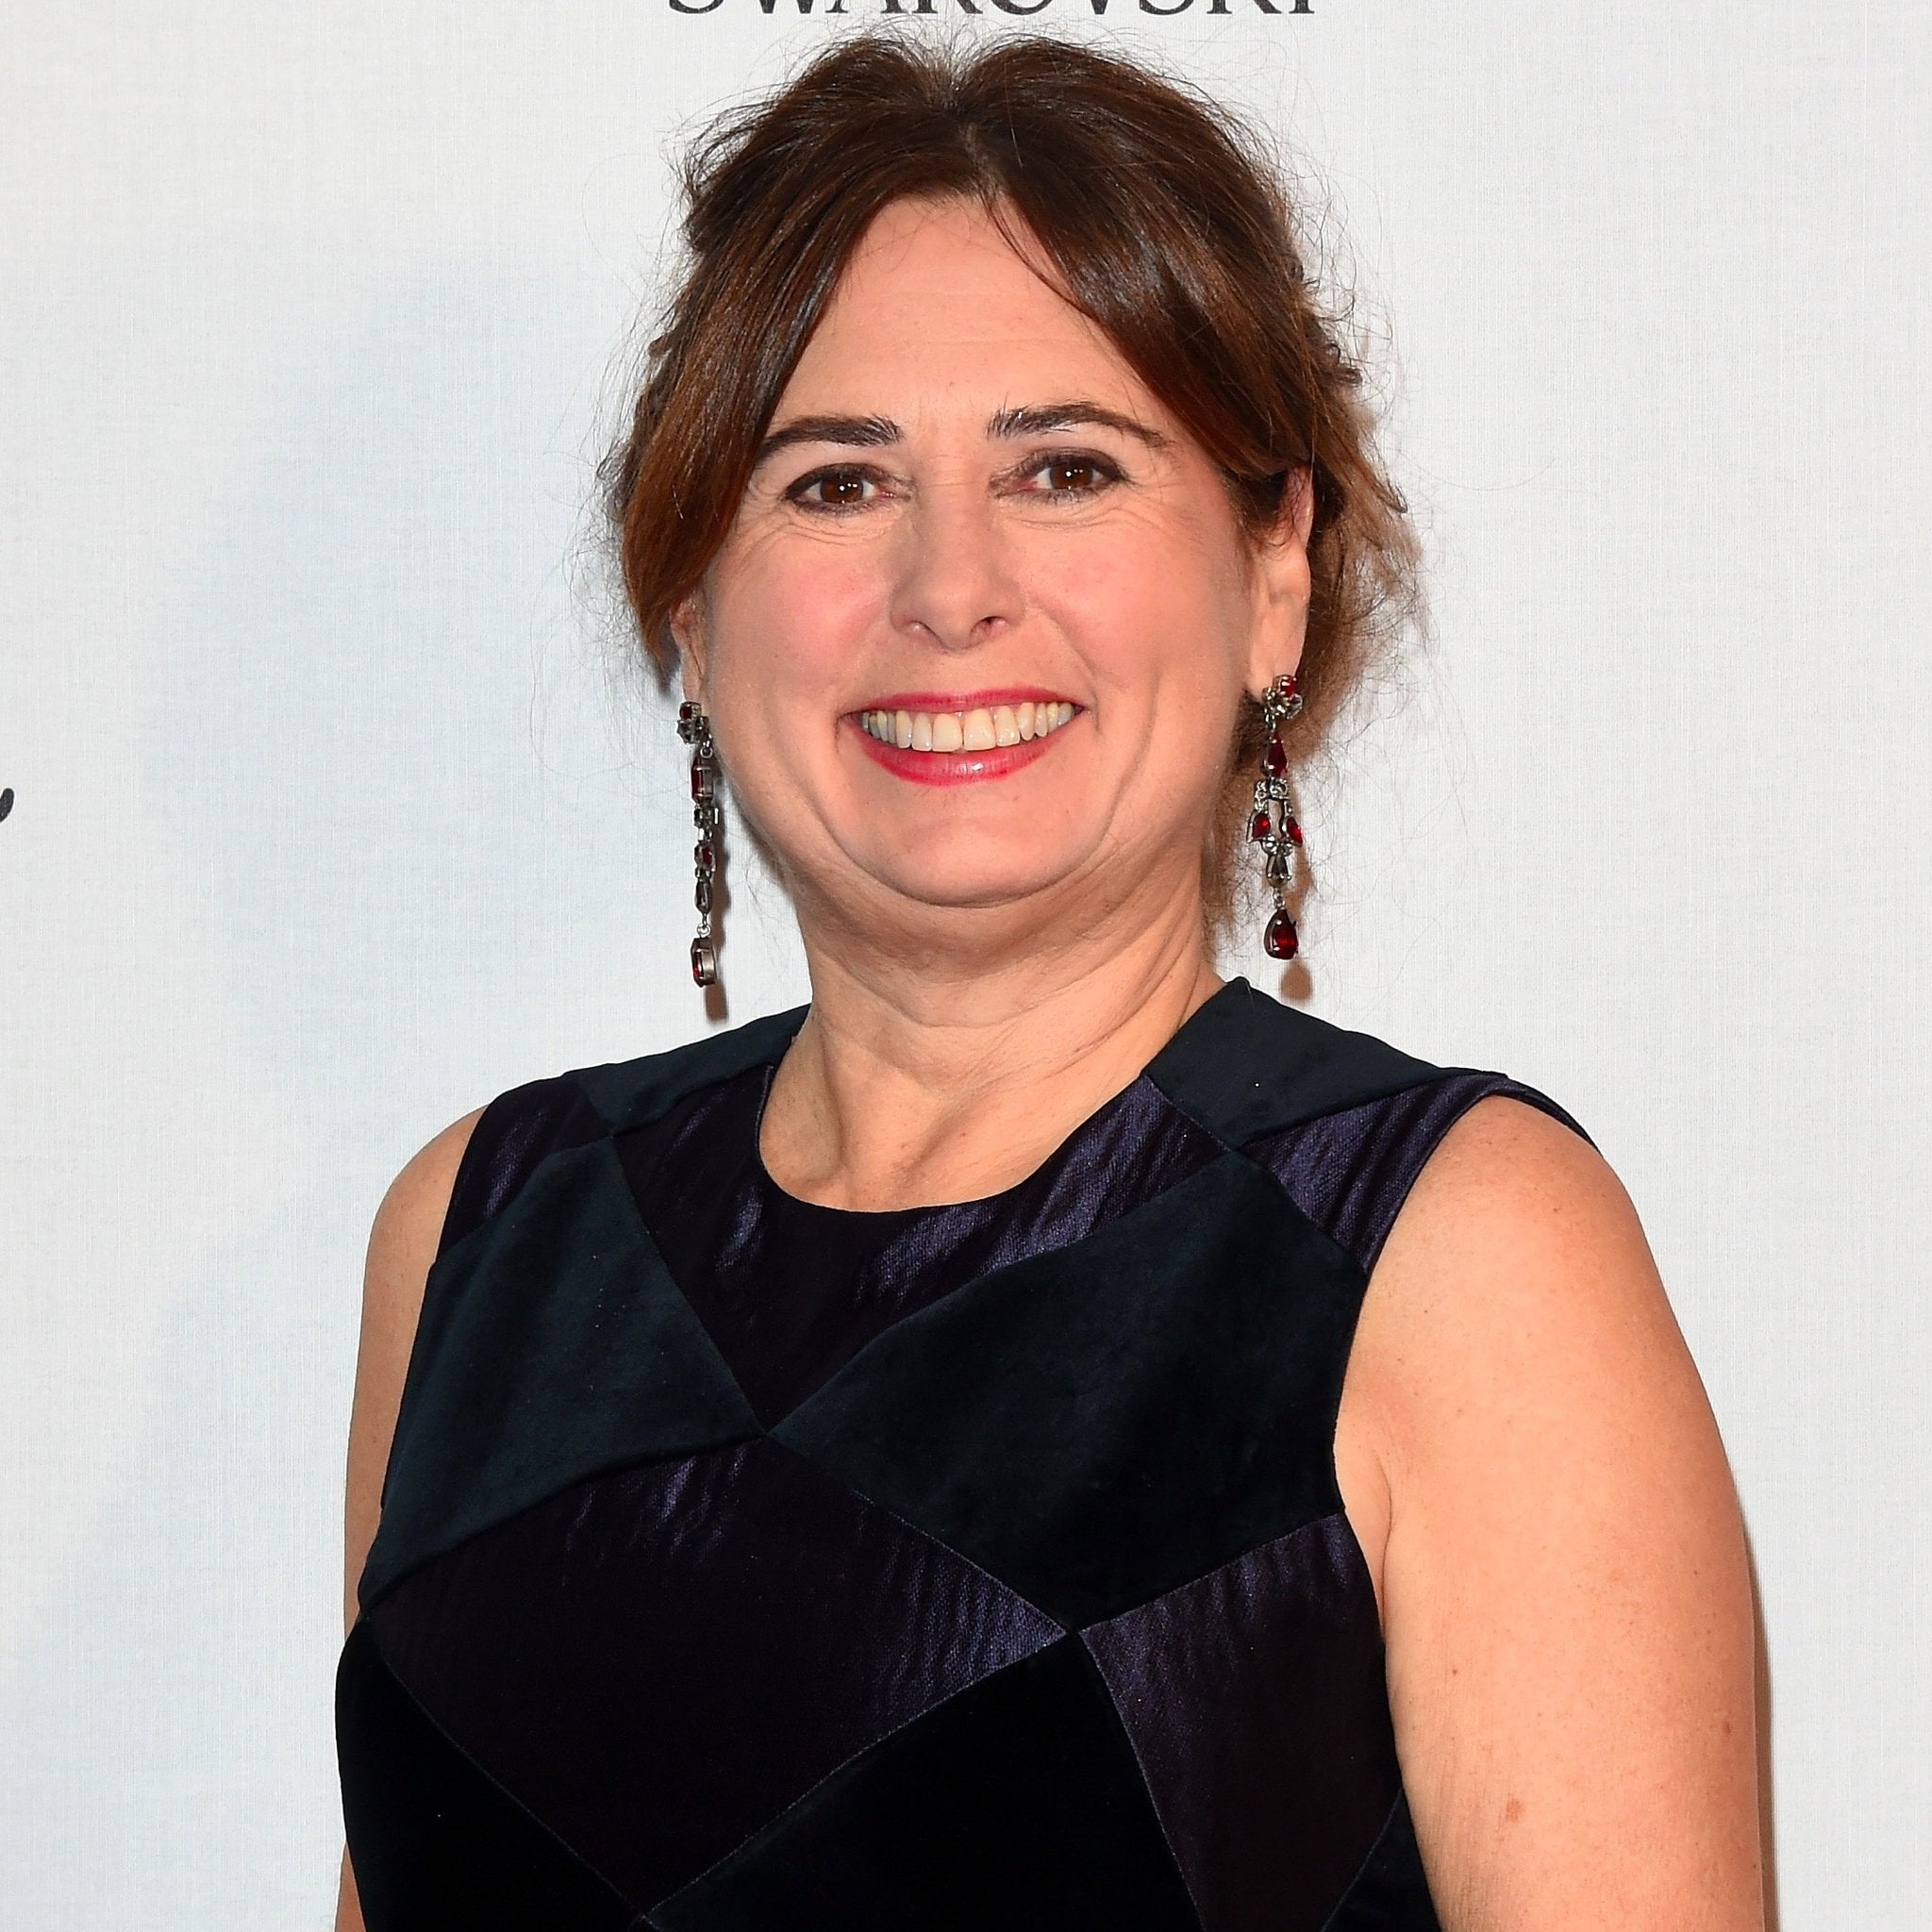 Longtime British Vogue Editor-in-Chief Alexandra Shulman to Step Down